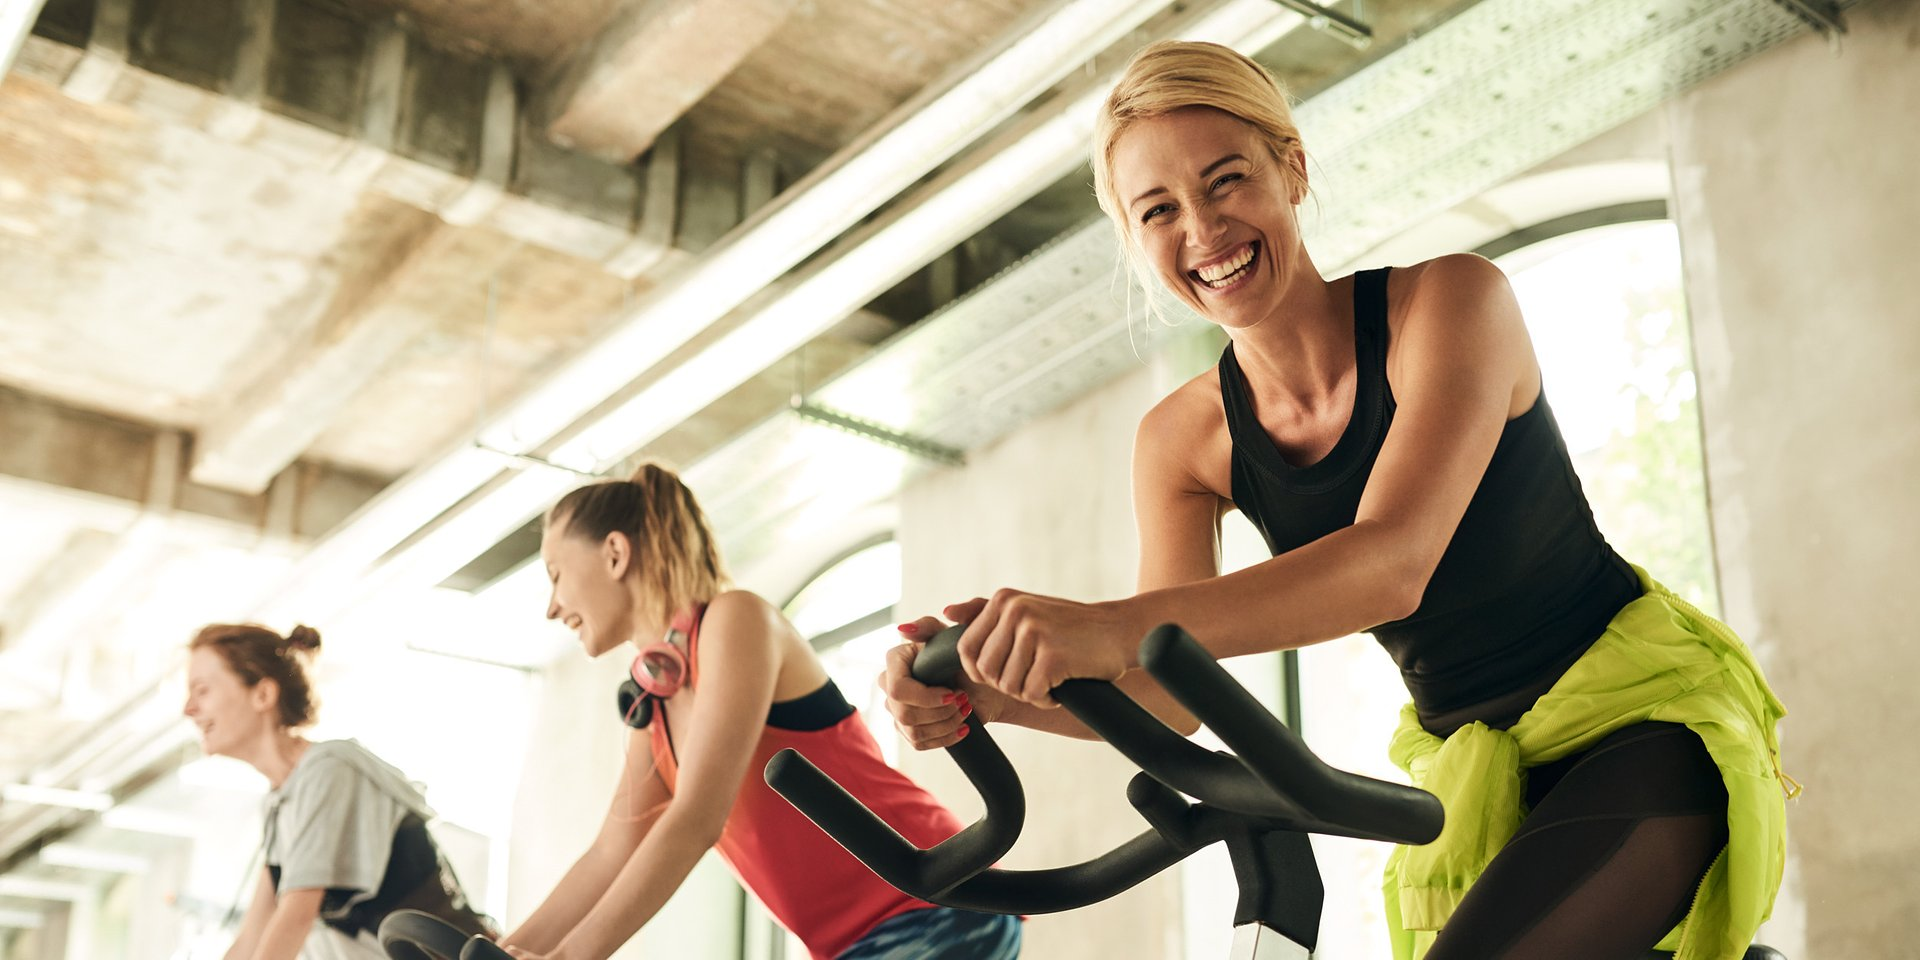 Study: gyms are not a place of increased epidemic risk